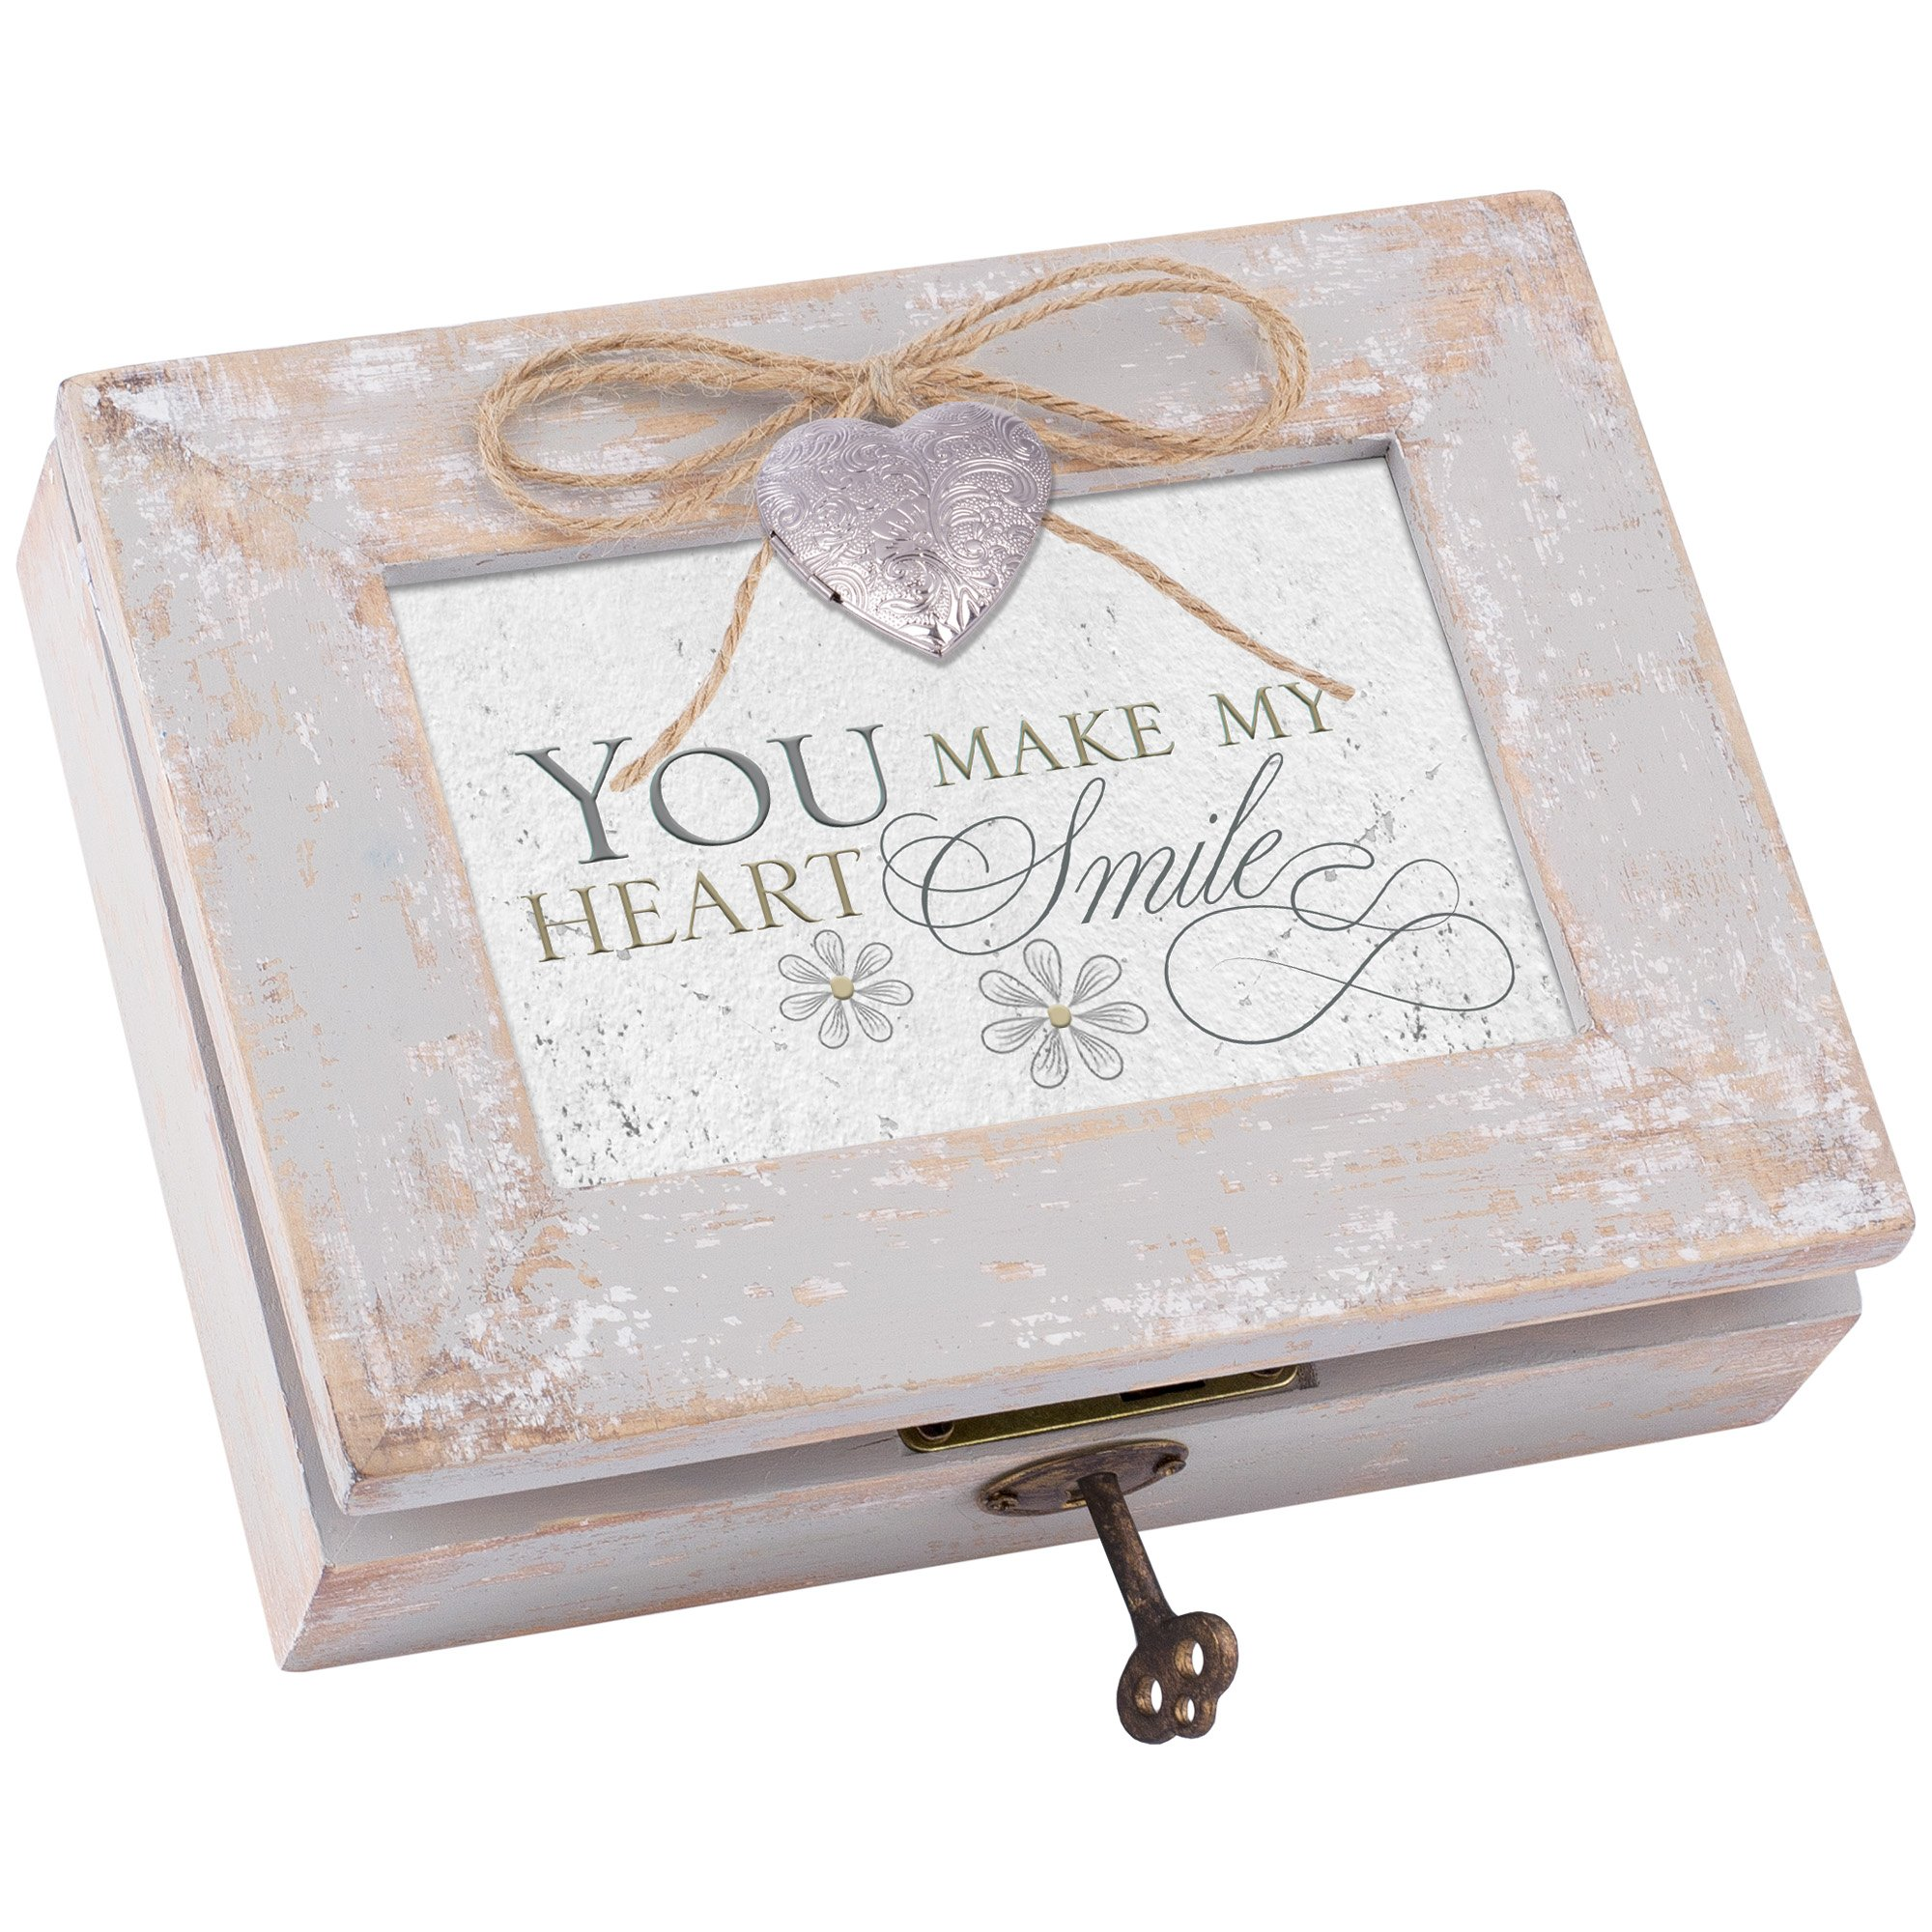 Cottage Garden You Make My Heart Smile Distressed Wood Locket Jewelry Music Box Plays Tune You Light Up My Life by Cottage Garden (Image #2)